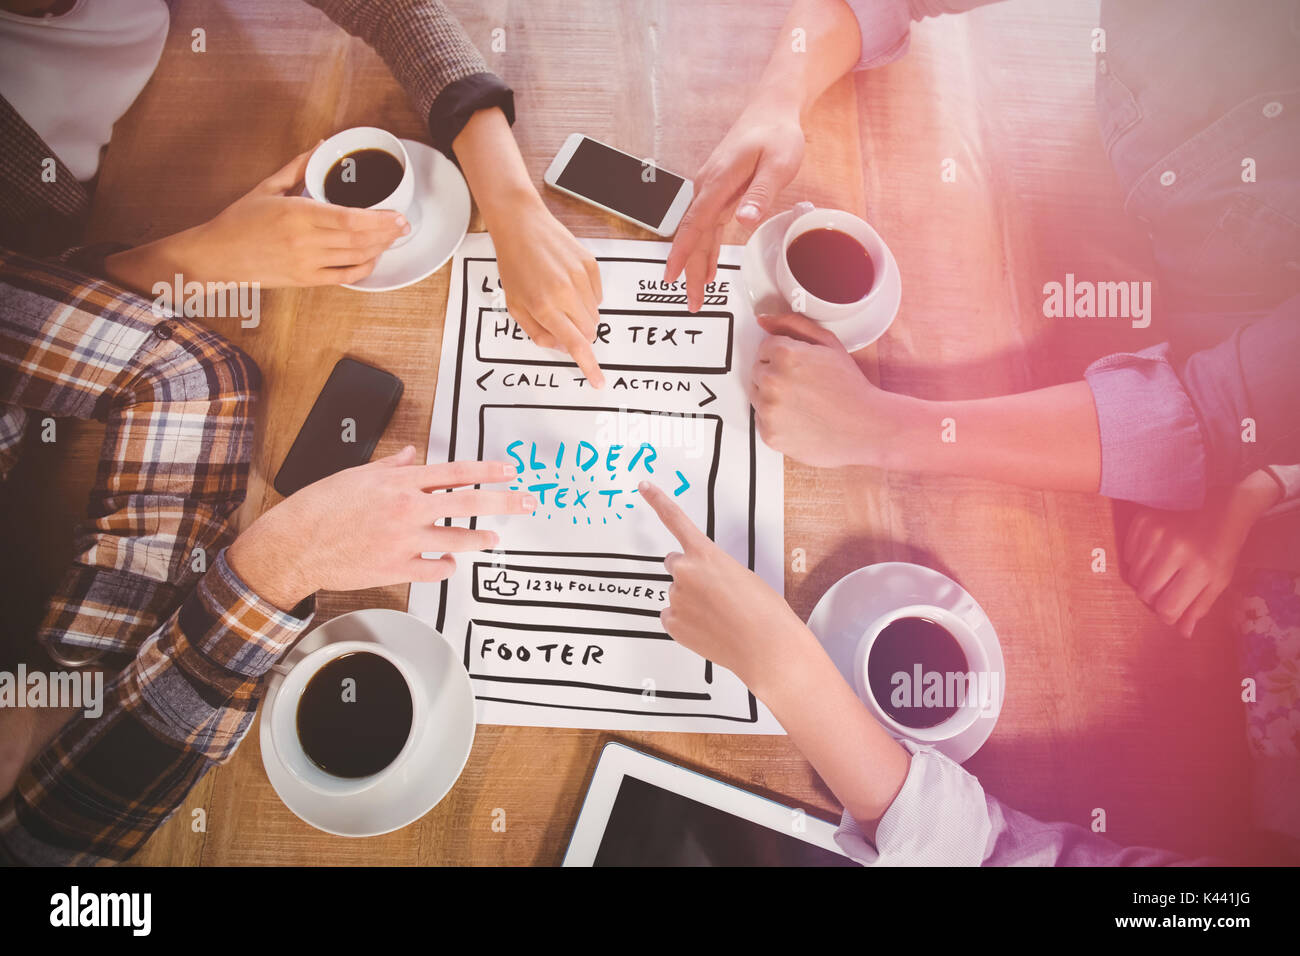 Illustration of website against friends discussing and drinking coffee - Stock Image